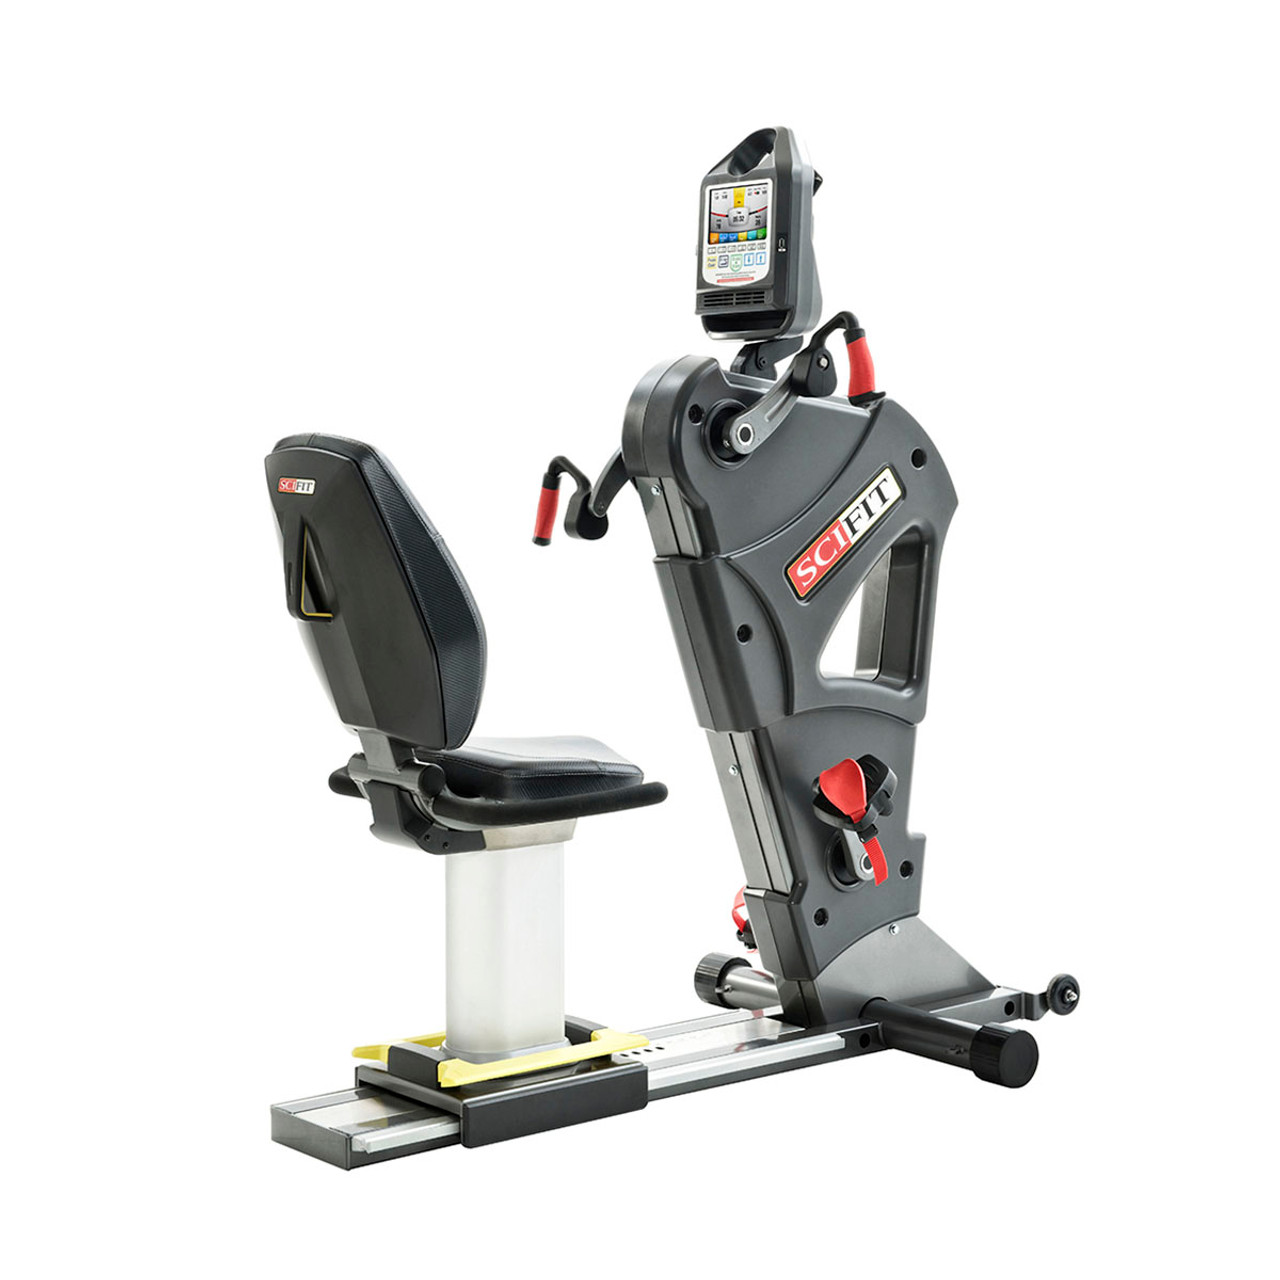 SciFit PRO2 Sport Total Body Exerciser - Adjustable Upper Cranks - Fixed Lower Cranks - Low Back/ Fixed Height Seat